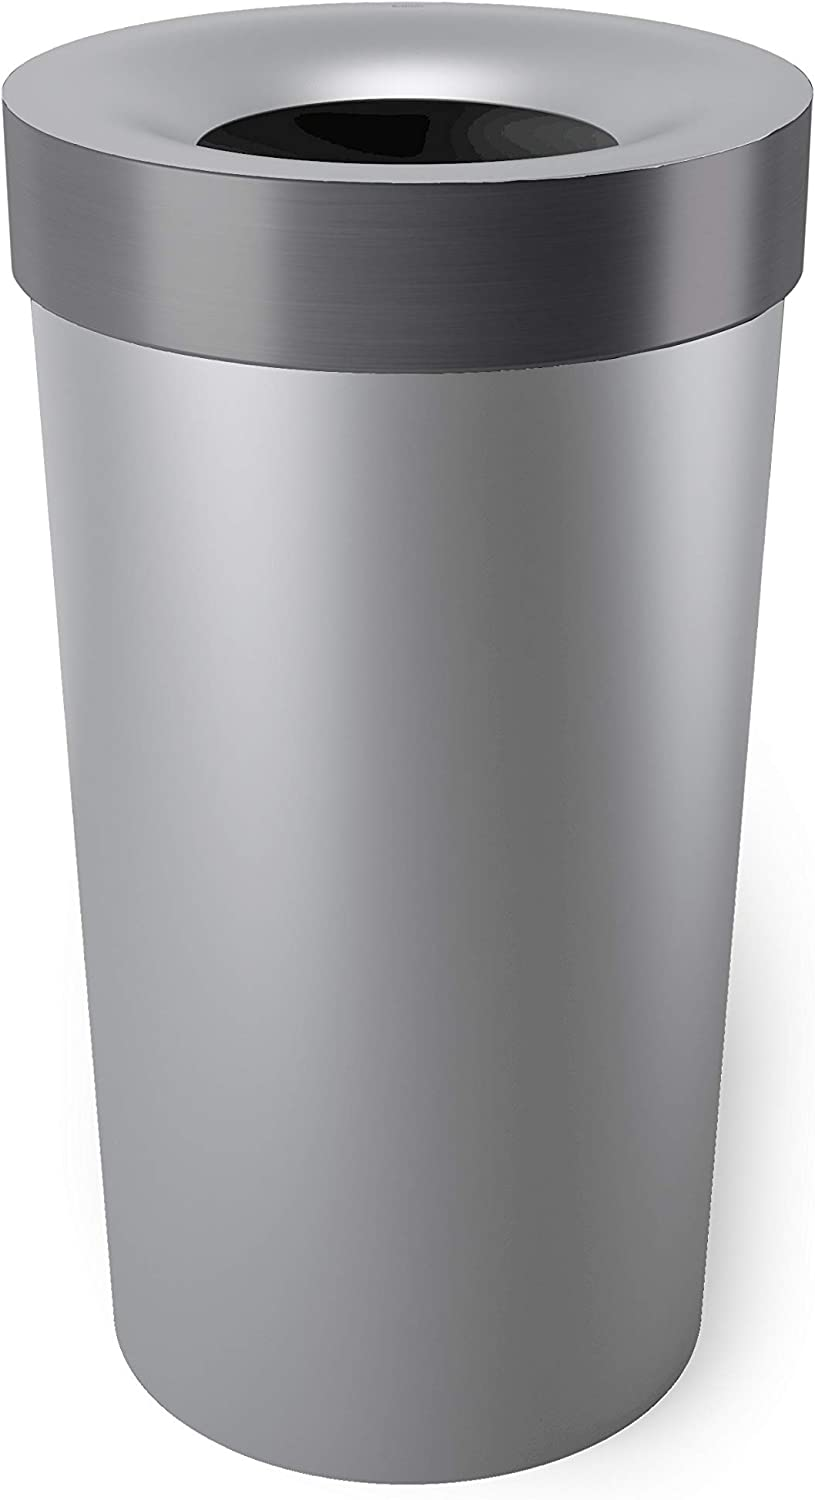 Umbra Vento Open Top 16.5-Gallon Kitchen Trash Large, Garbage Can for Indoor, Outdoor or Commercial Use, 16.5 Gallon, Grey/Steel